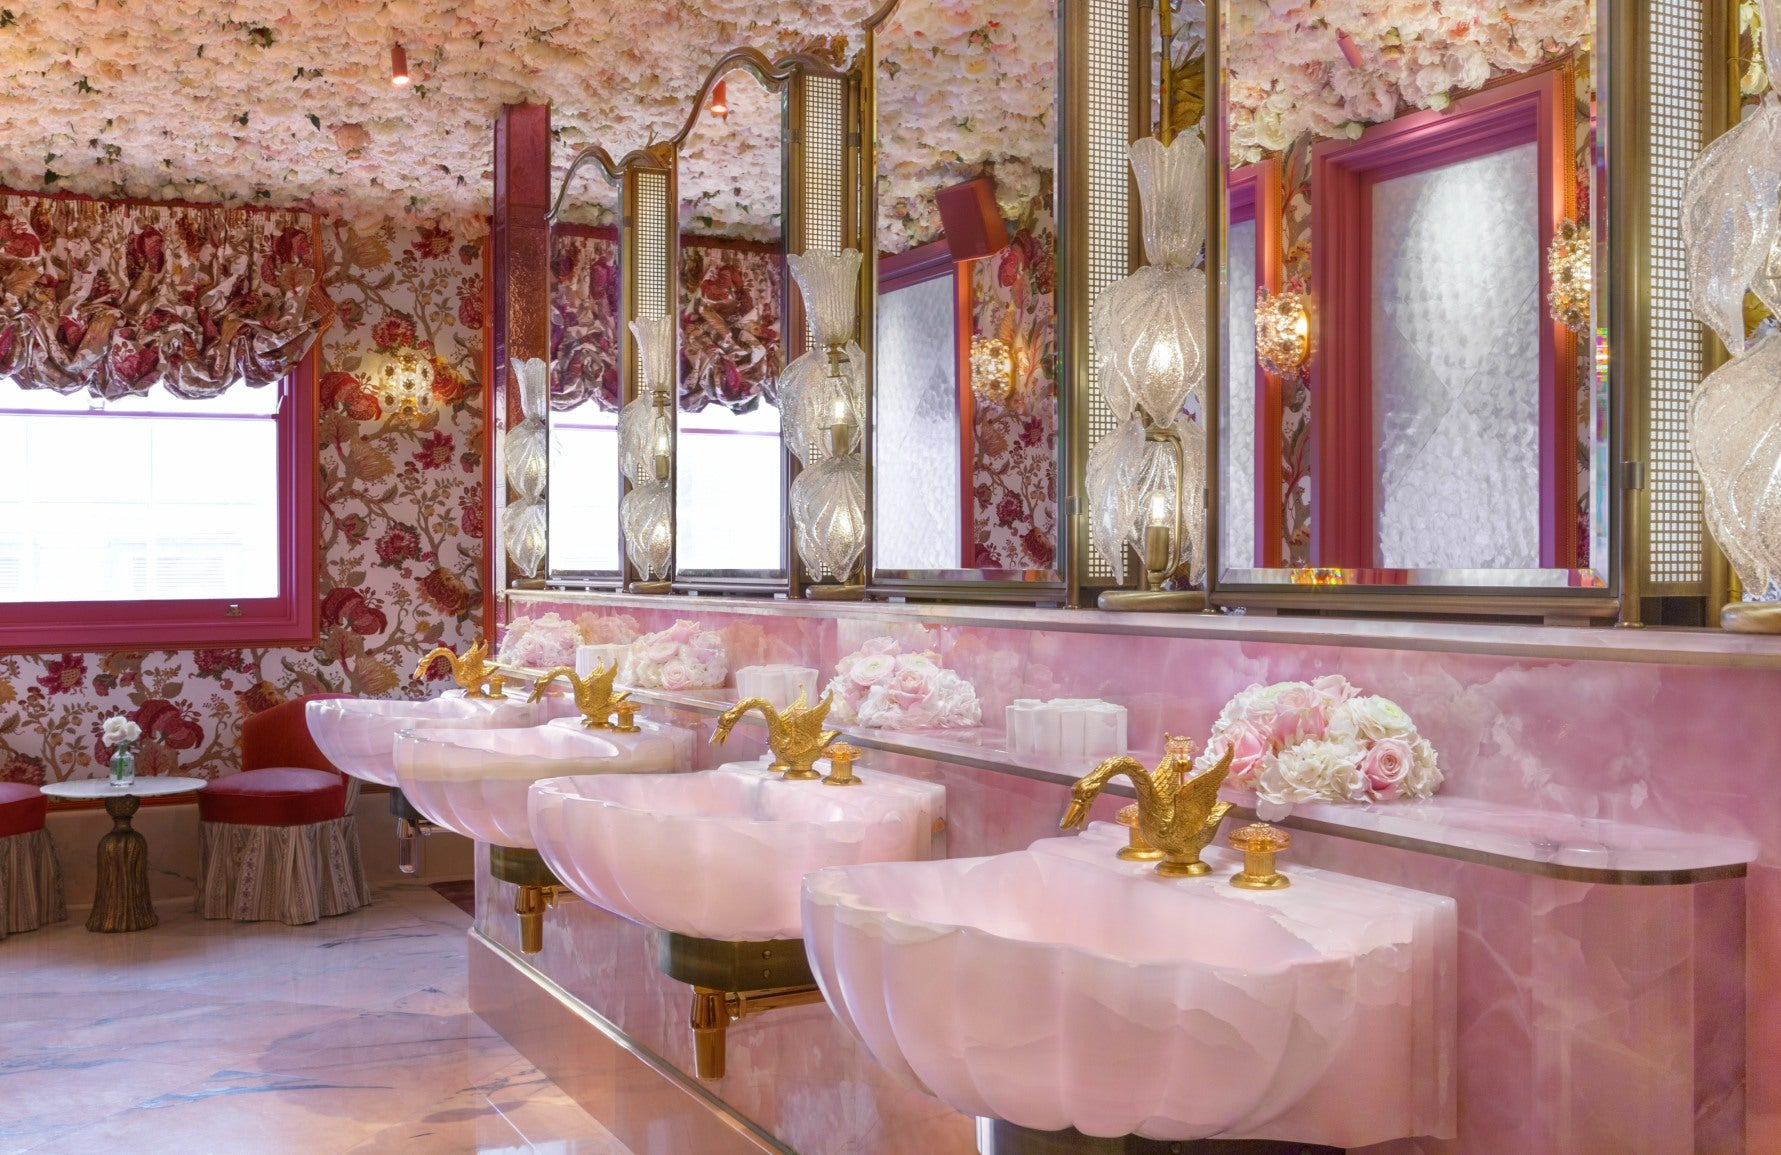 Annabel's Bathrooms | Pink Bathroom | Martin Brudnizki | Discover more in the LuxDeco Style Guide